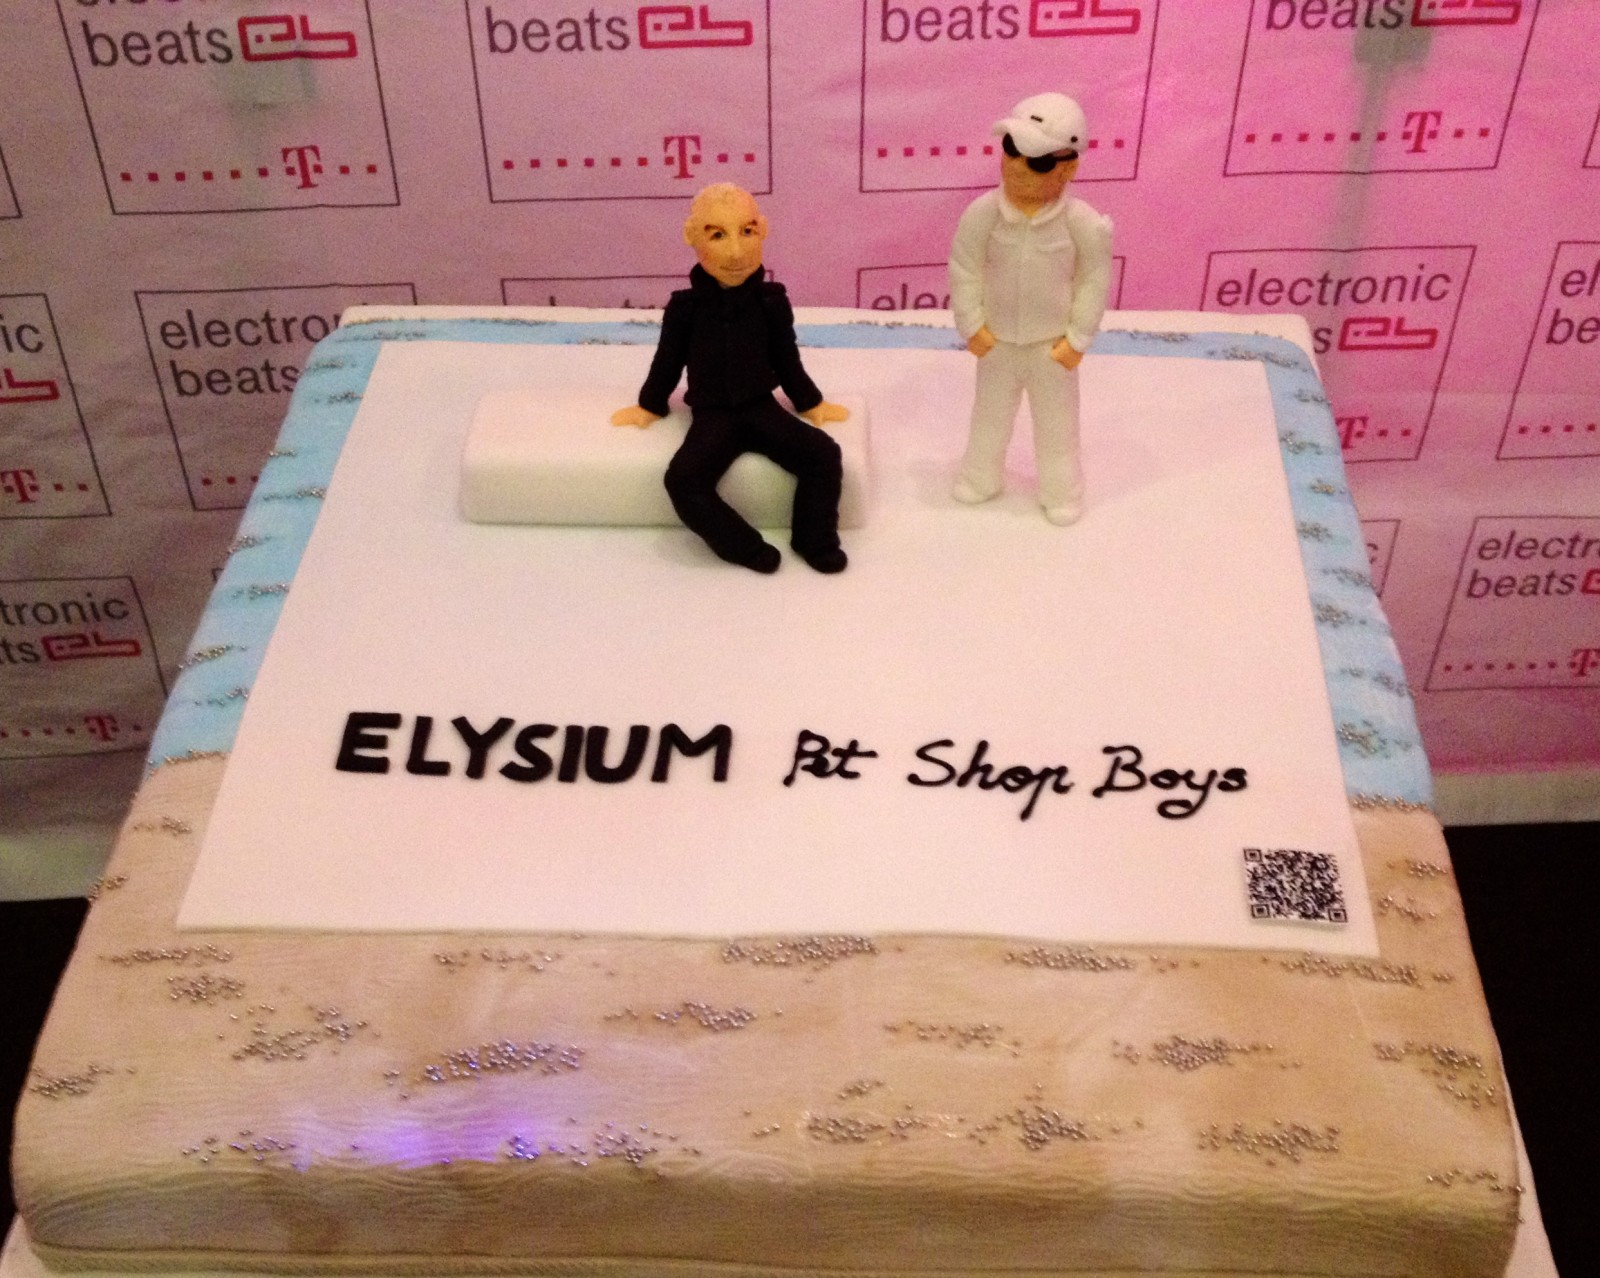 Elysium launch, Berlin 2013